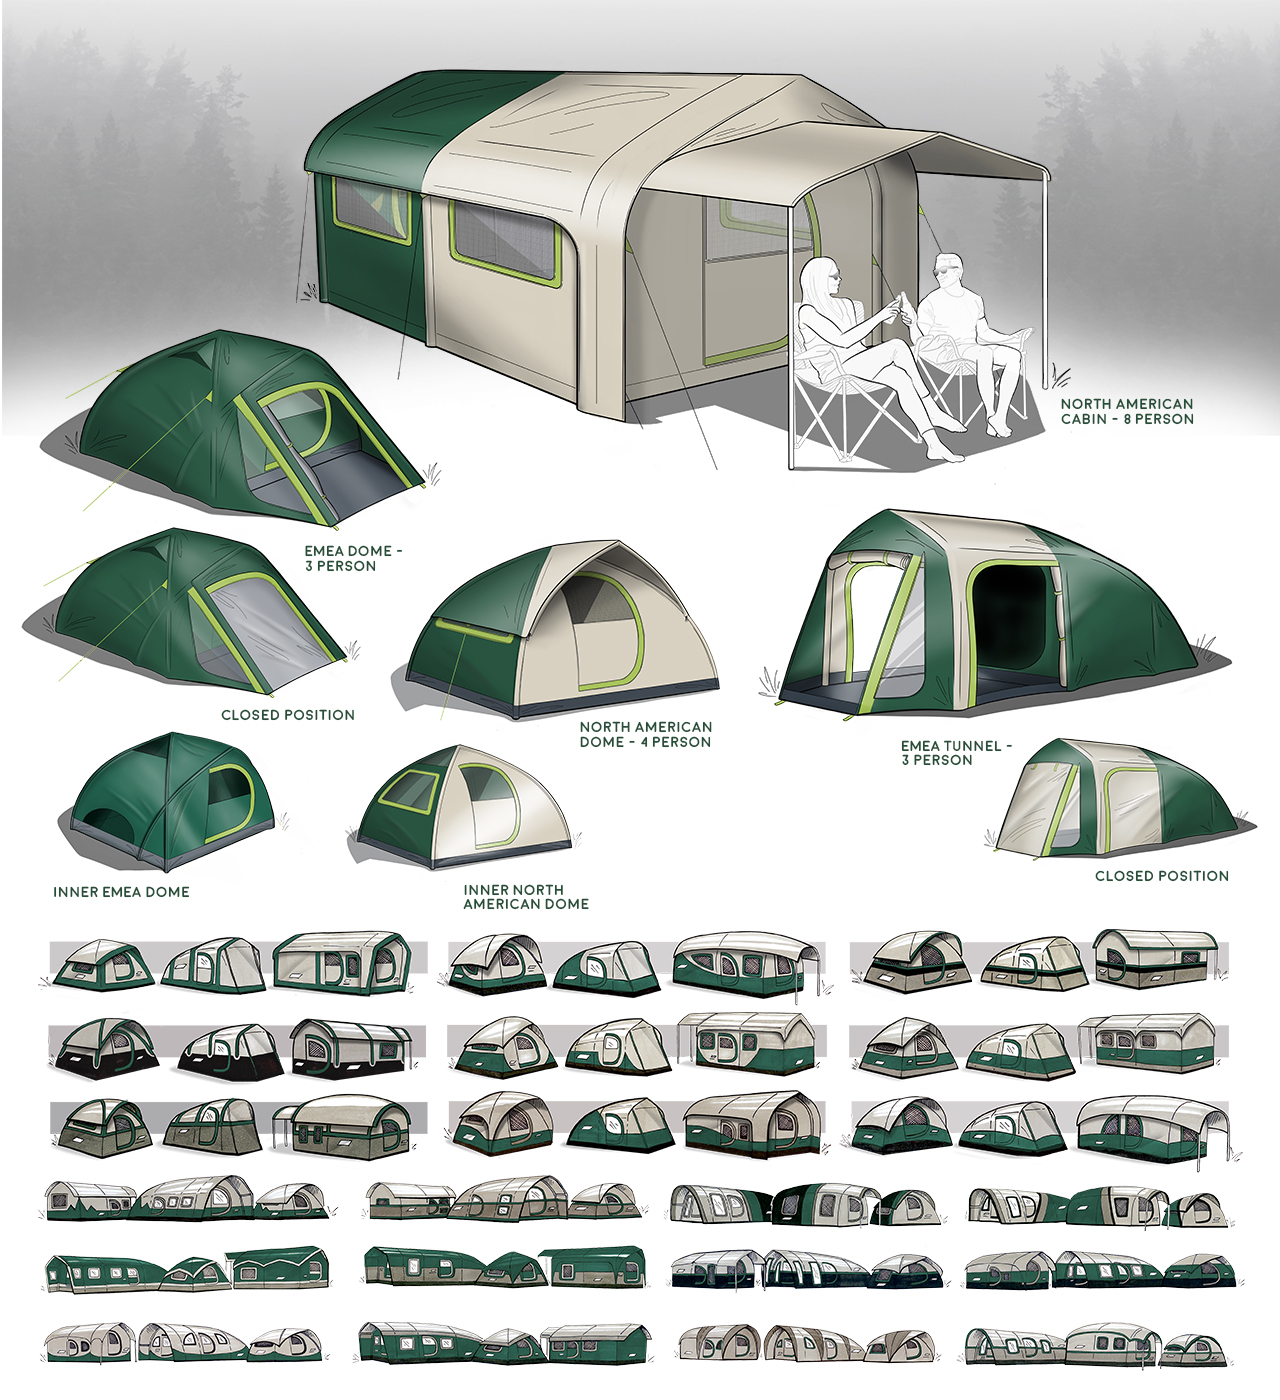 Tent_Sketches_Collage.jpg